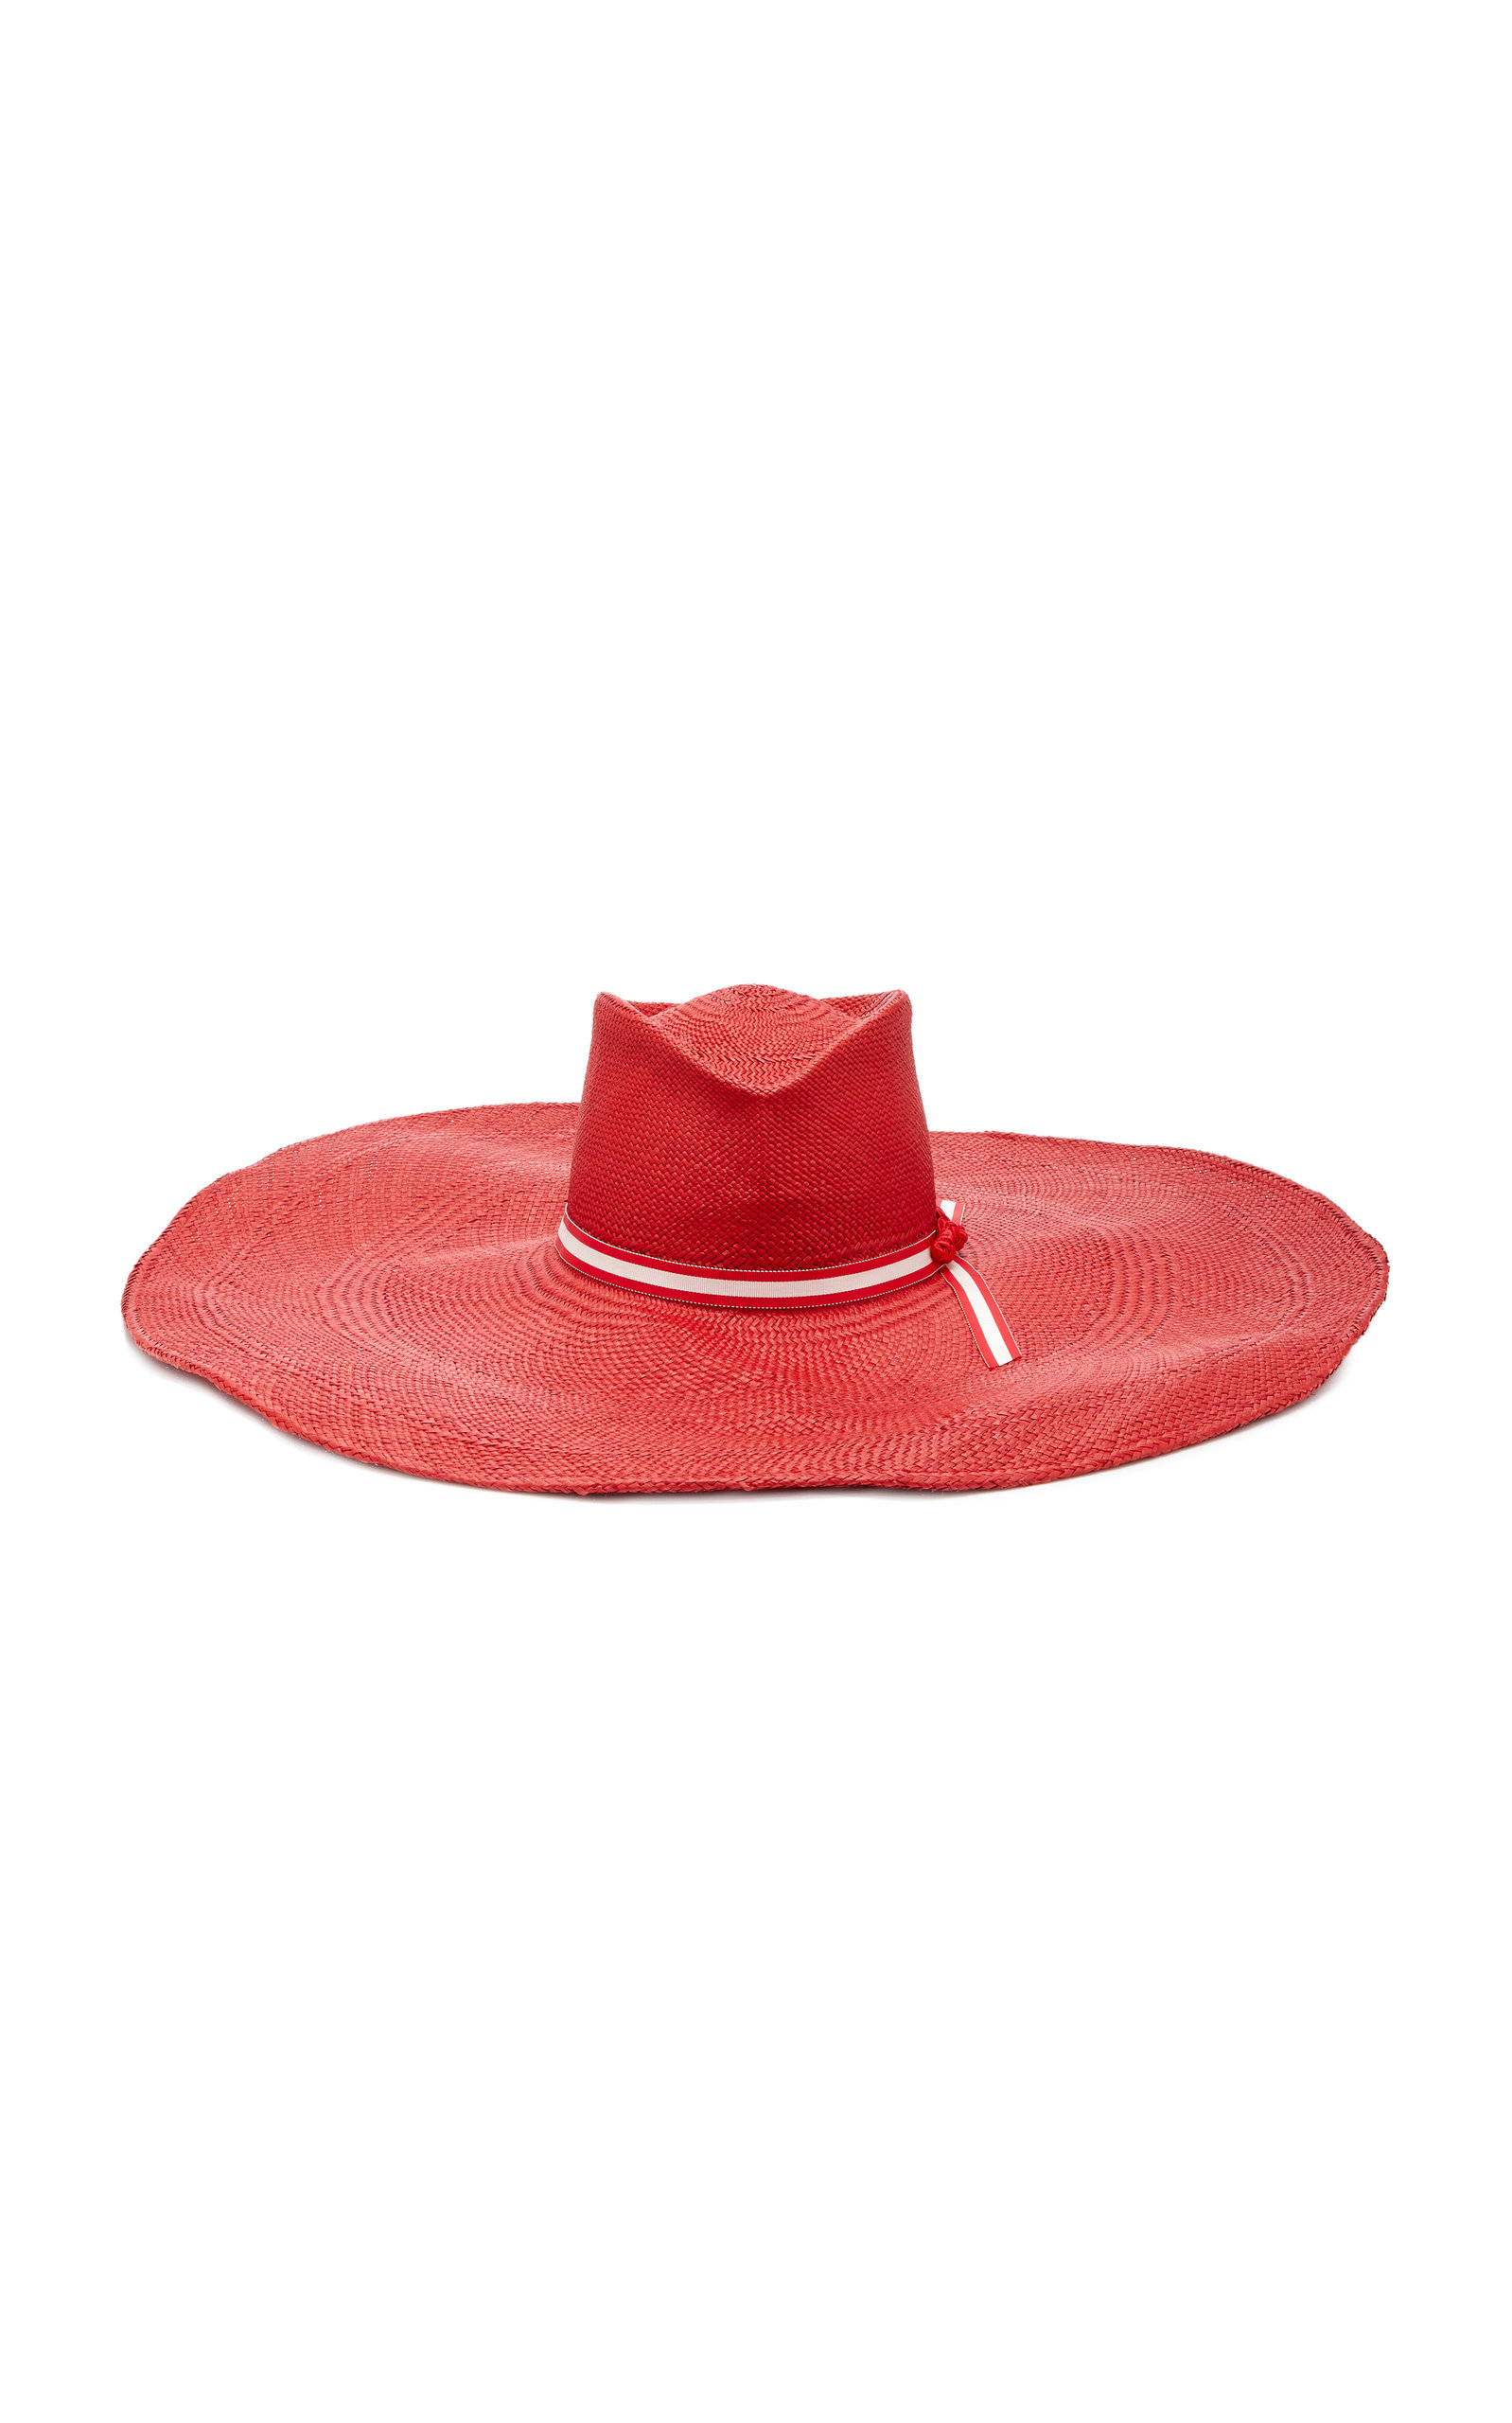 GLADYS TAMEZ MILLINERY Daphne Hat in Red